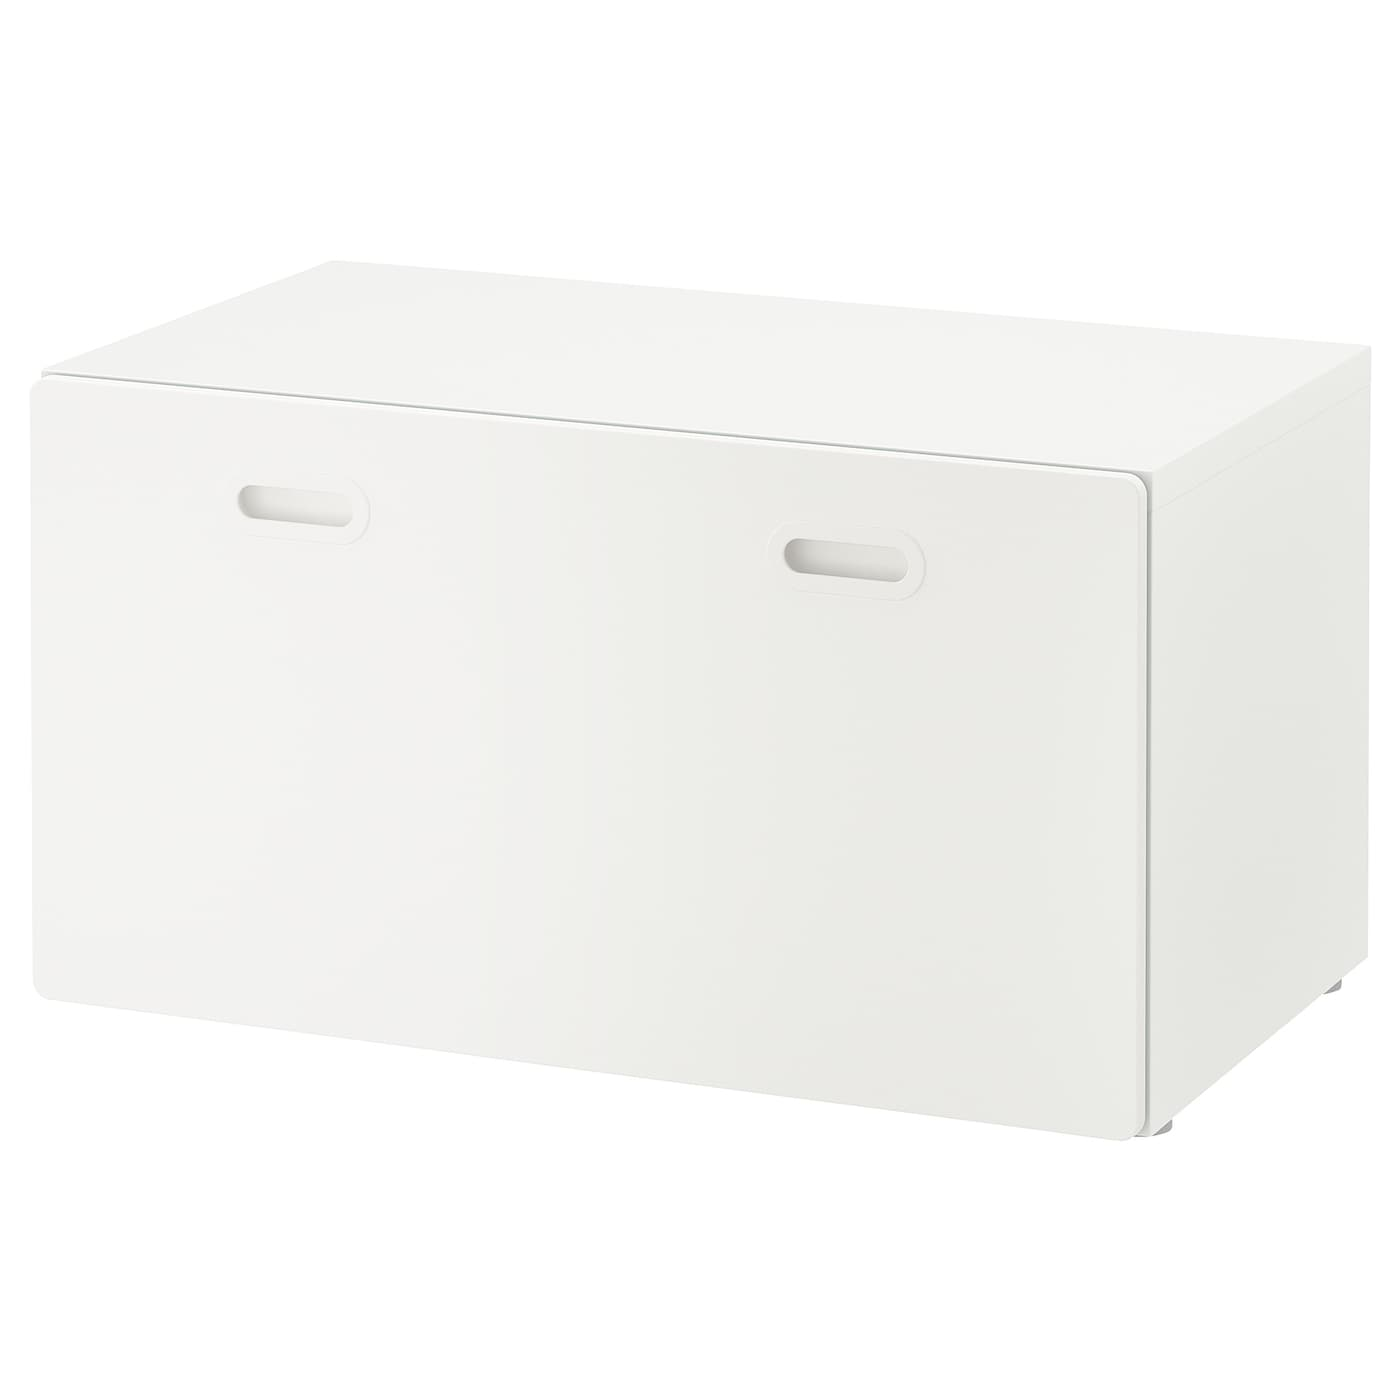 Picture of: Stuva Fritids Bench With Toy Storage White White 90x50x50 Cm Ikea